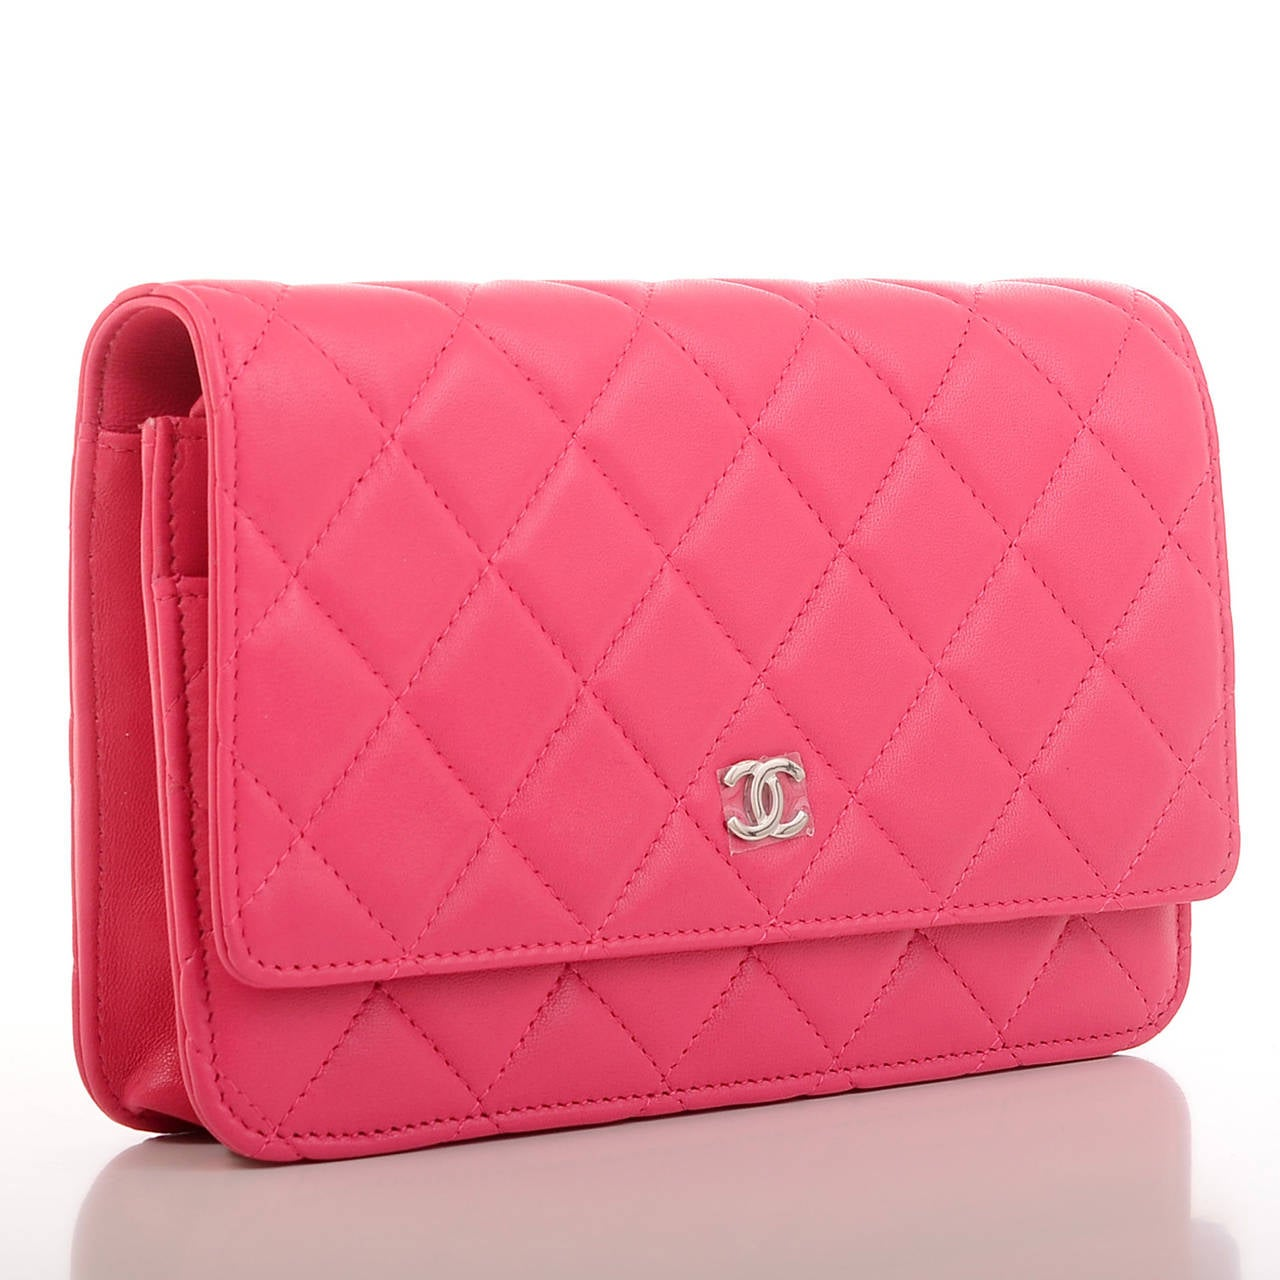 Chanel Fuchsia Pink Classic Quilted Lambskin Wallet On Chain (WOC) In New never worn Condition For Sale In New York, NY